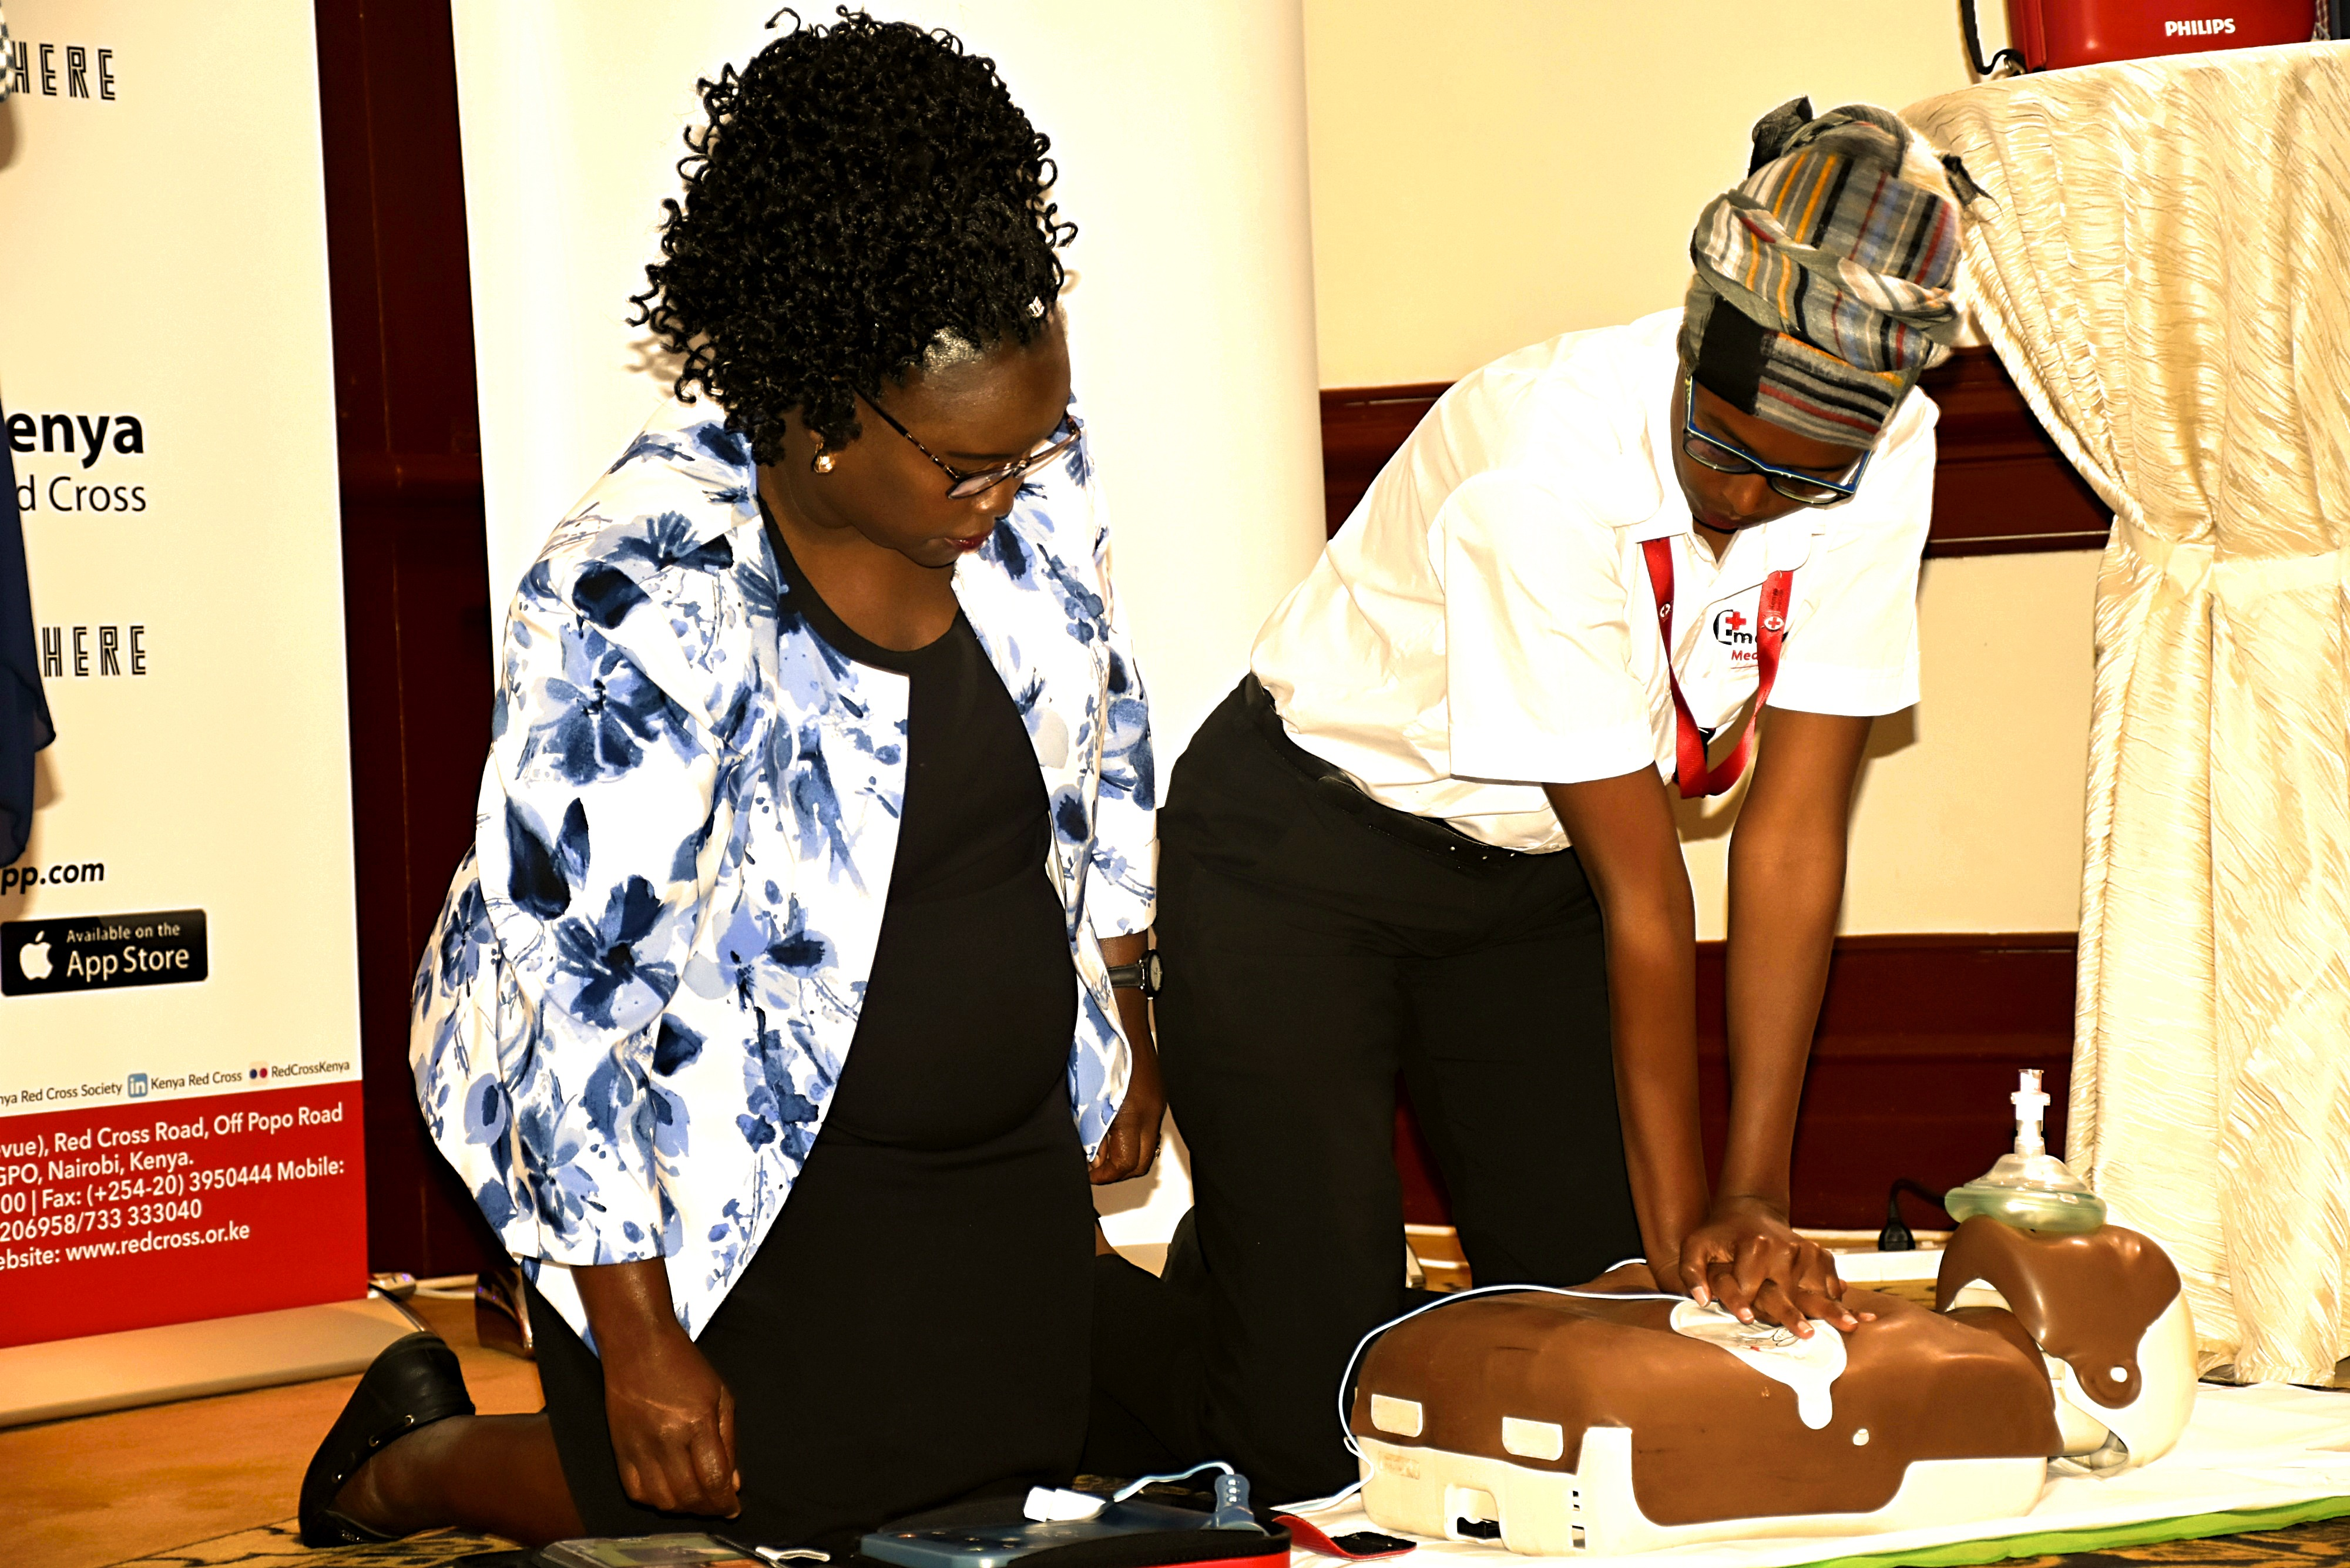 Red Cross Trainees showing how to do Cardiopulmonary resuscitation (CPR) www.businesstoday.co.ke